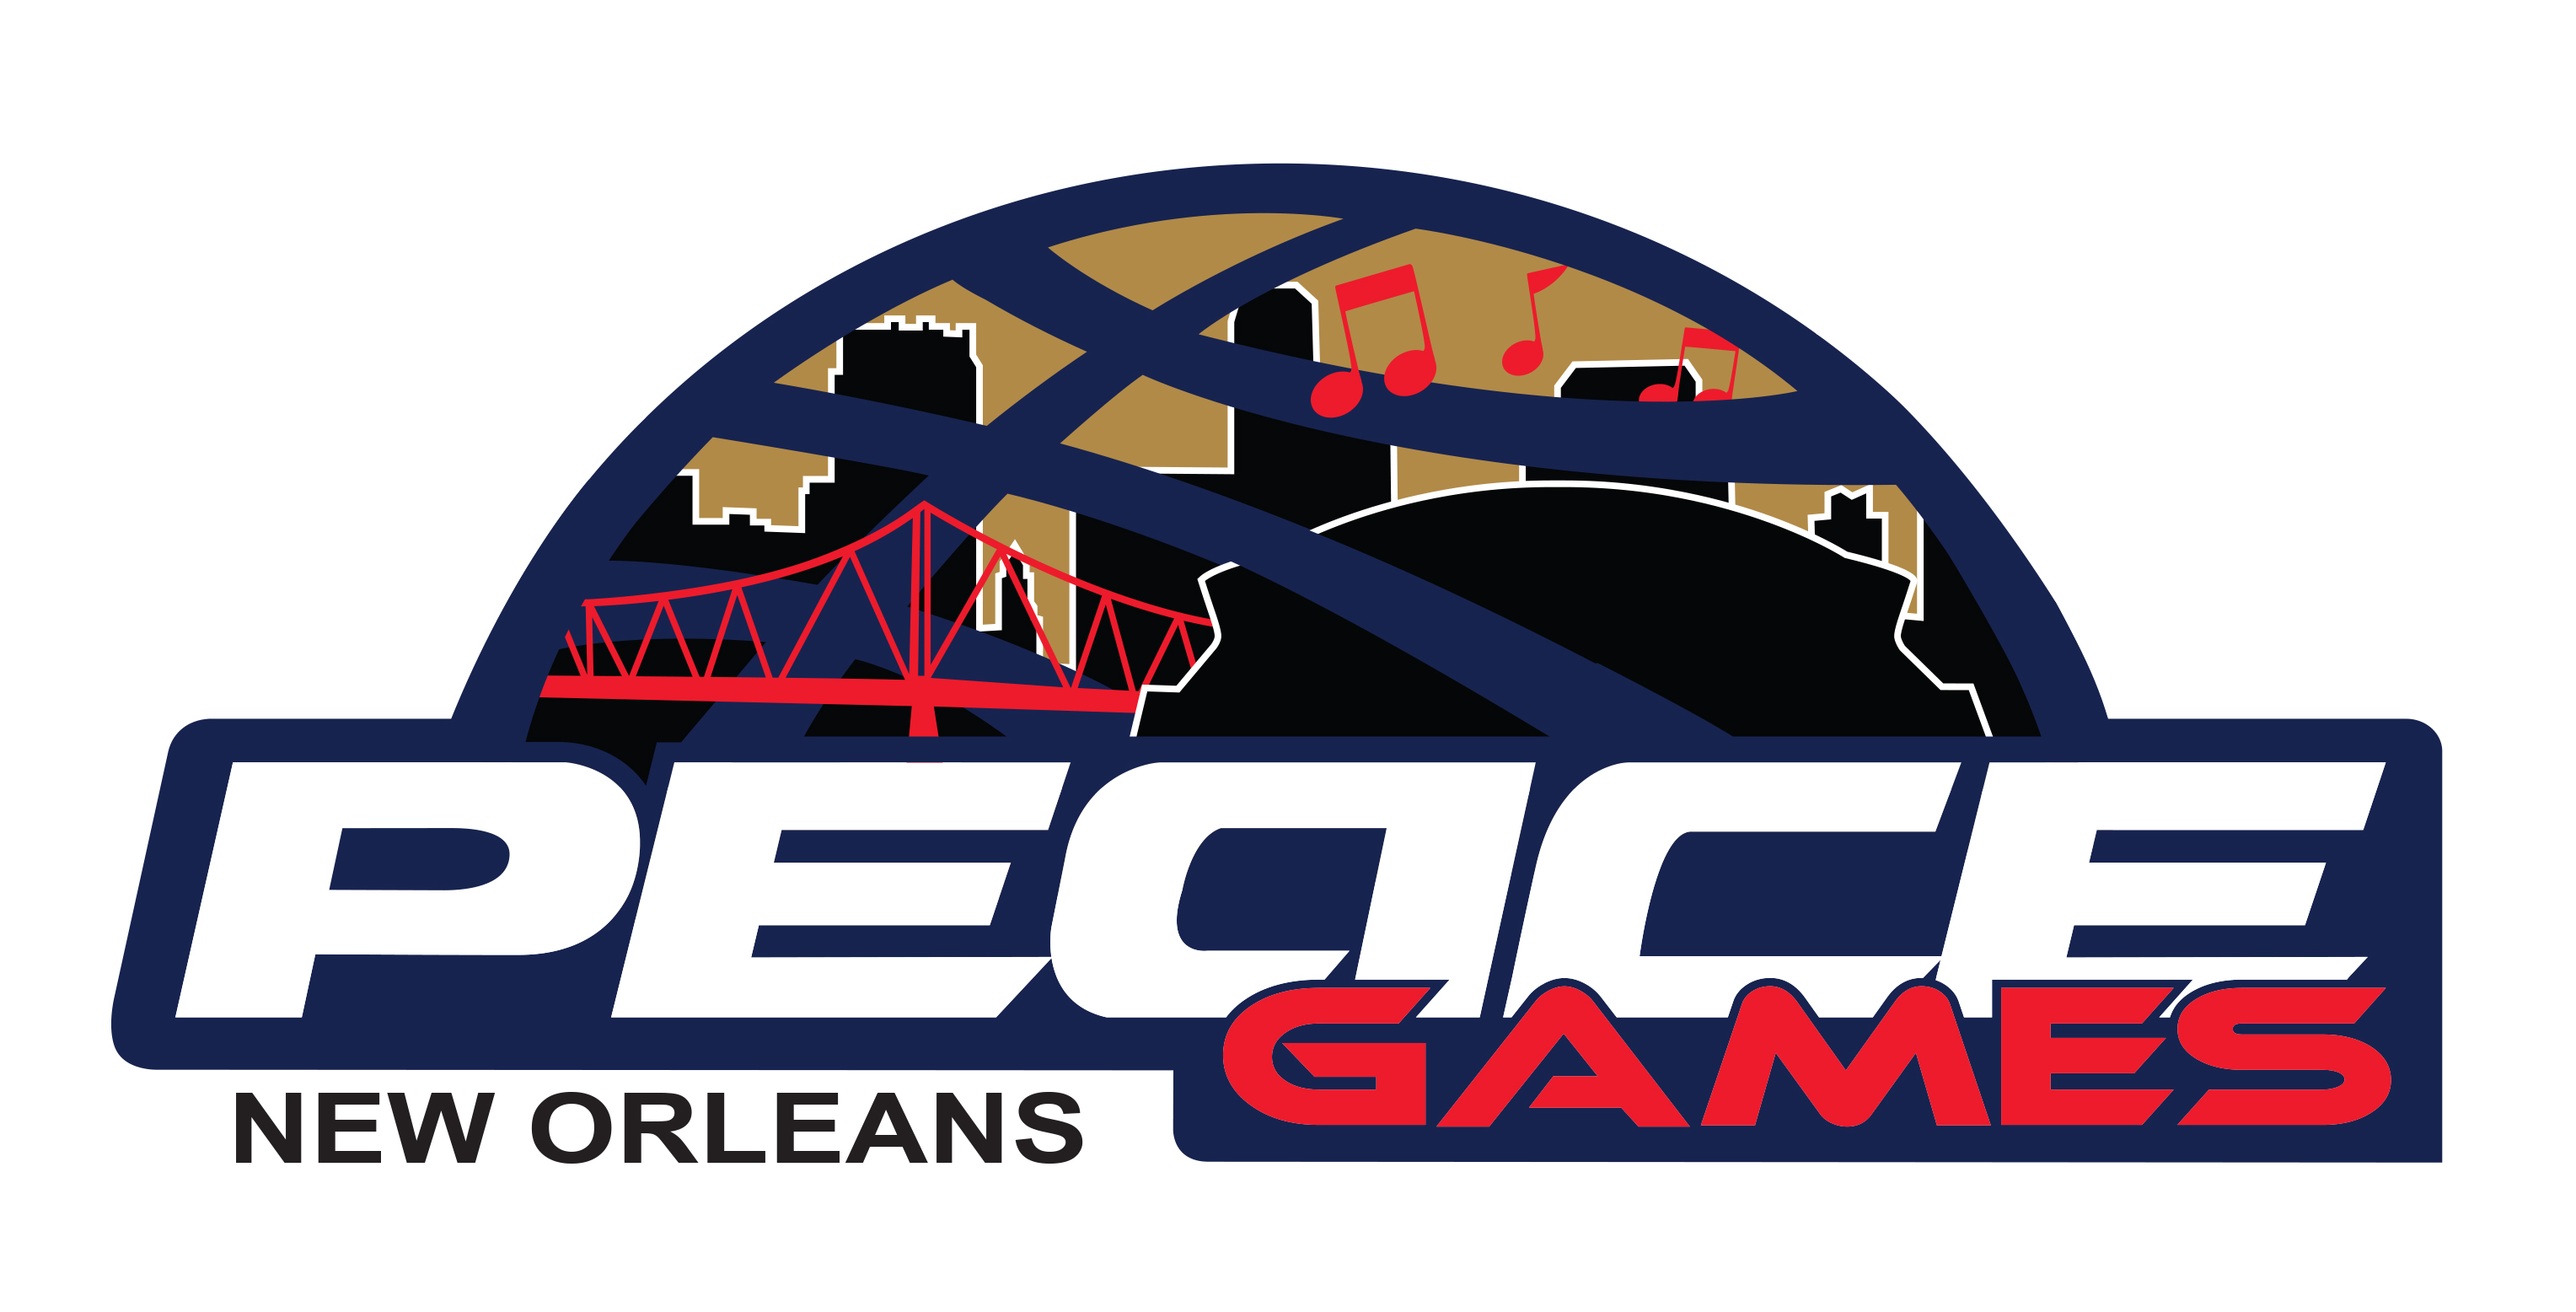 2014 NOLA Peace Games Logo